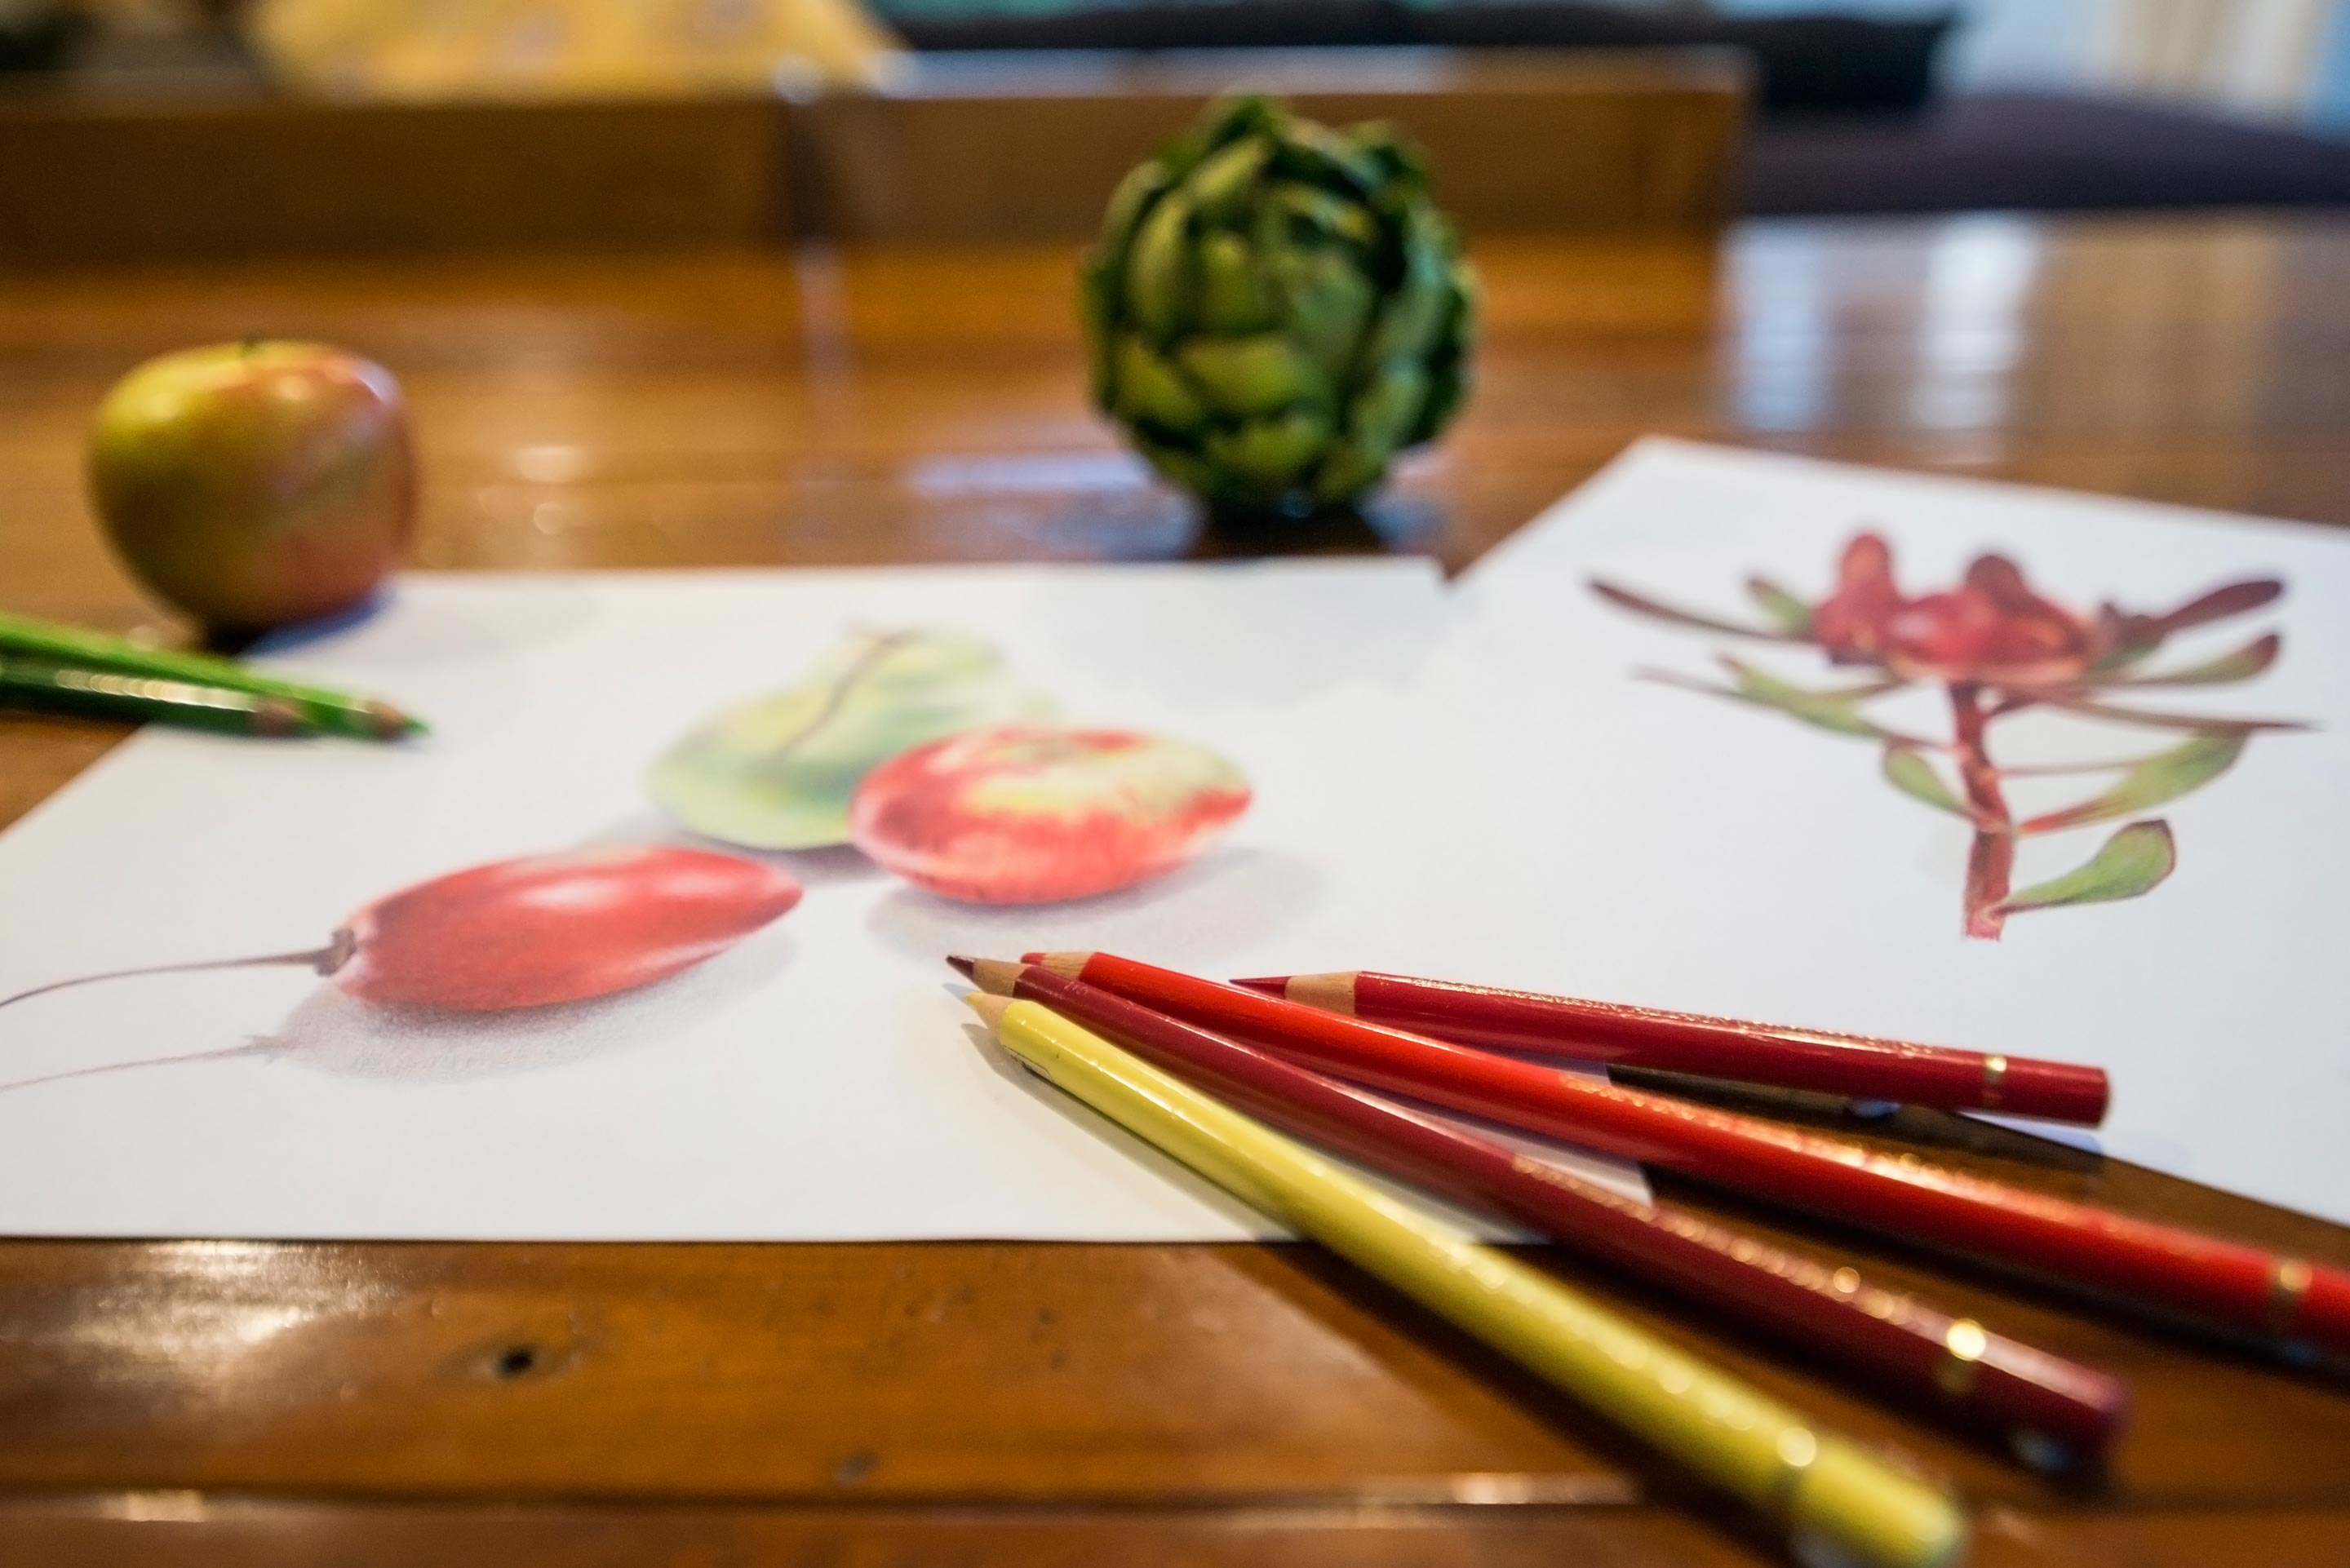 Learn how to draw with pencils